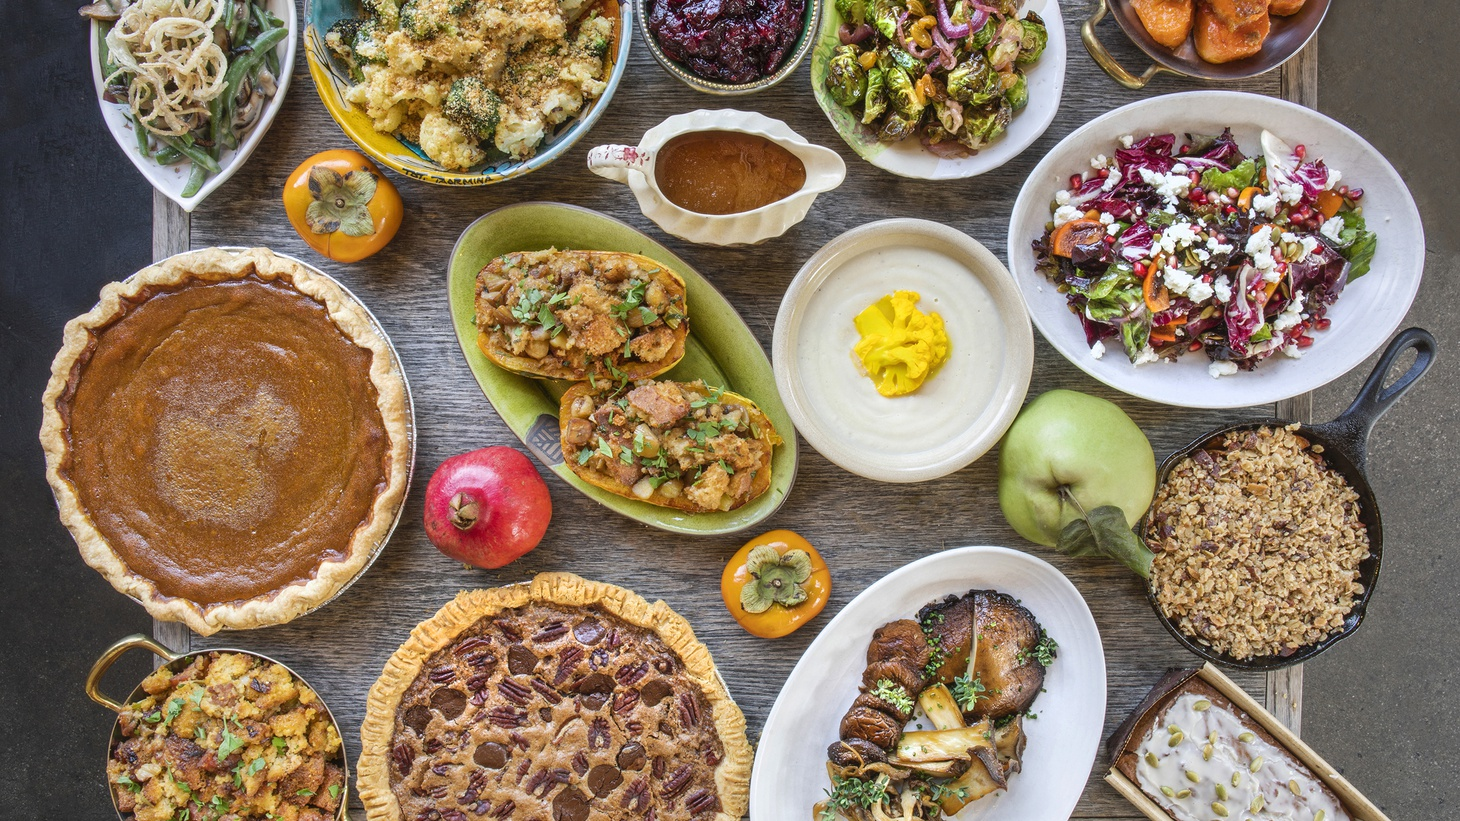 Akasha in Culver City offers many Thanksgiving dishes for you to take away and eat at home this year, from pies to stuffing to sides.